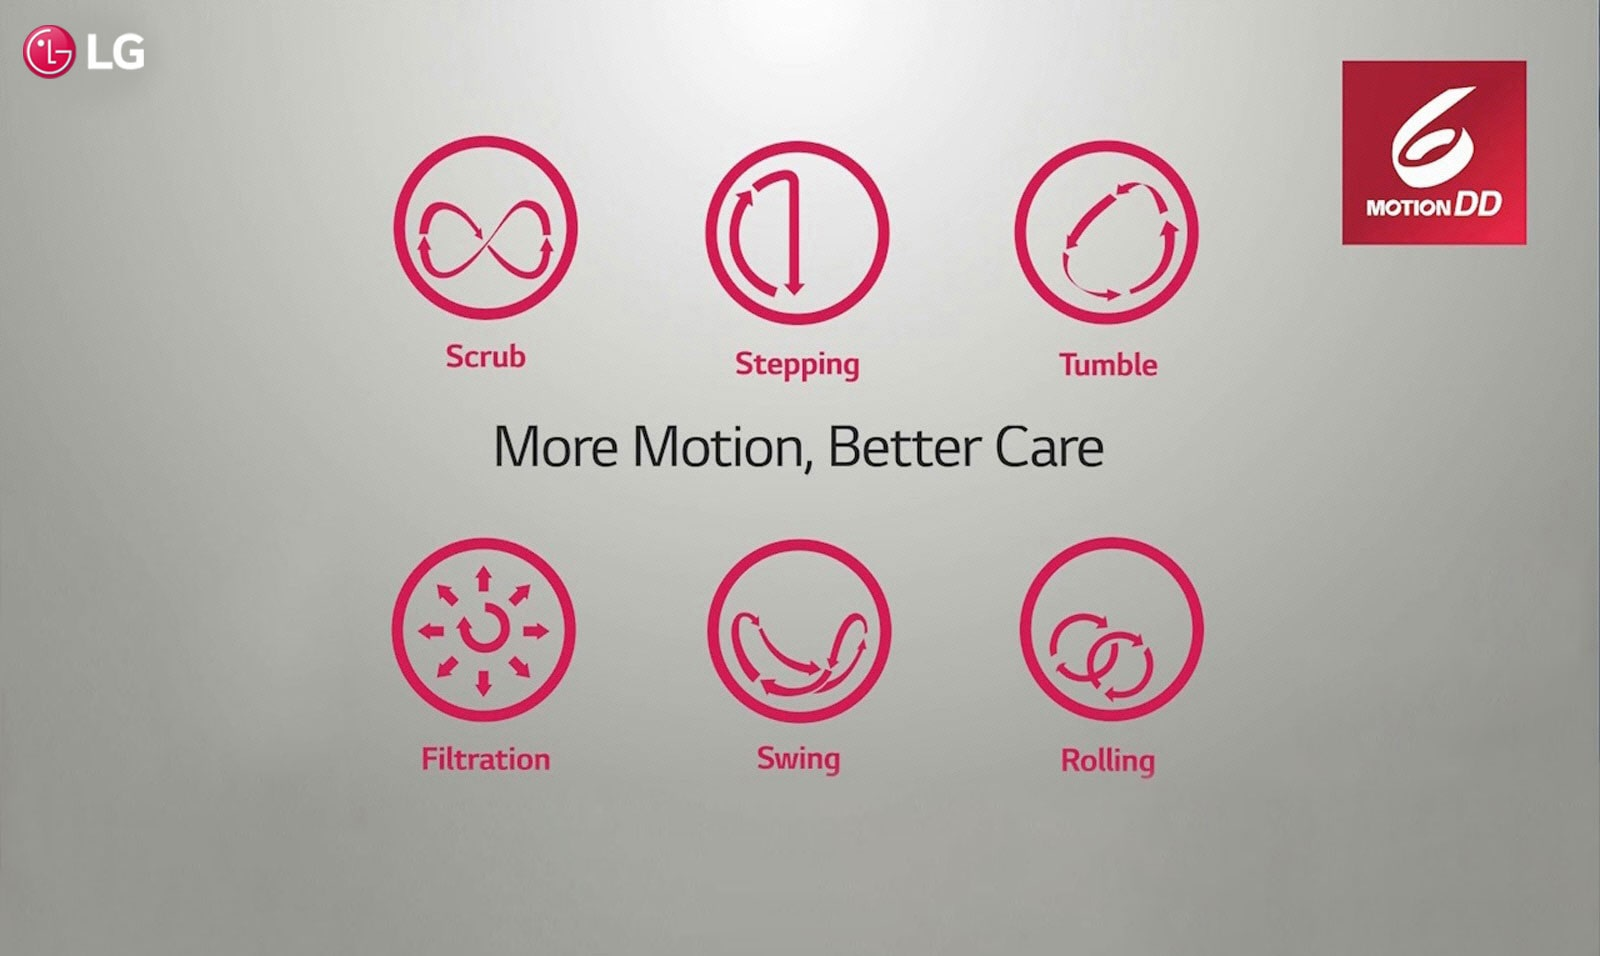 LG FHT1207ZNL More Motion Better Care